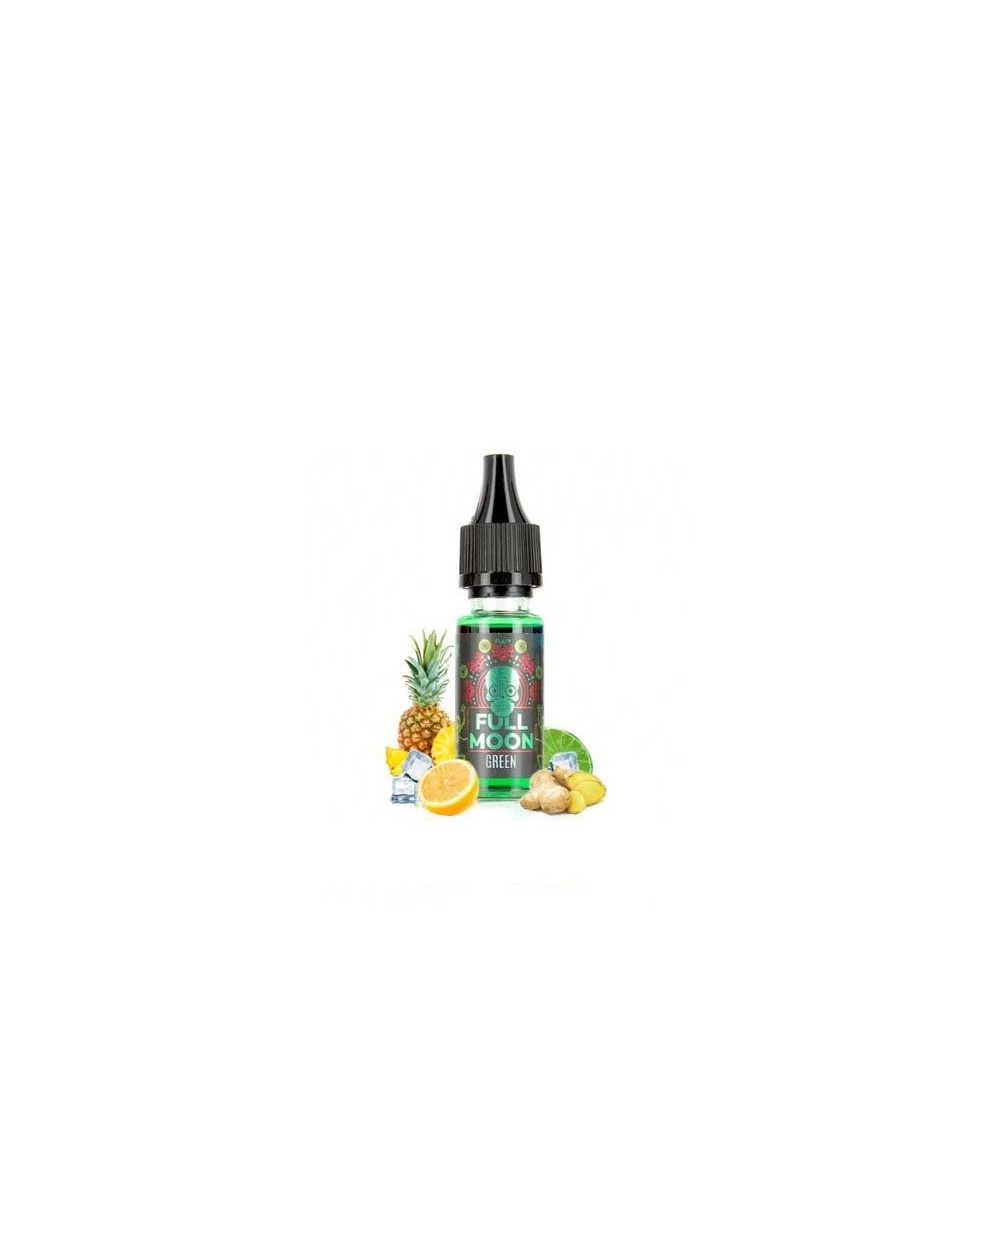 Concentrate Green Just Fruit 10ml - Full Moon-1